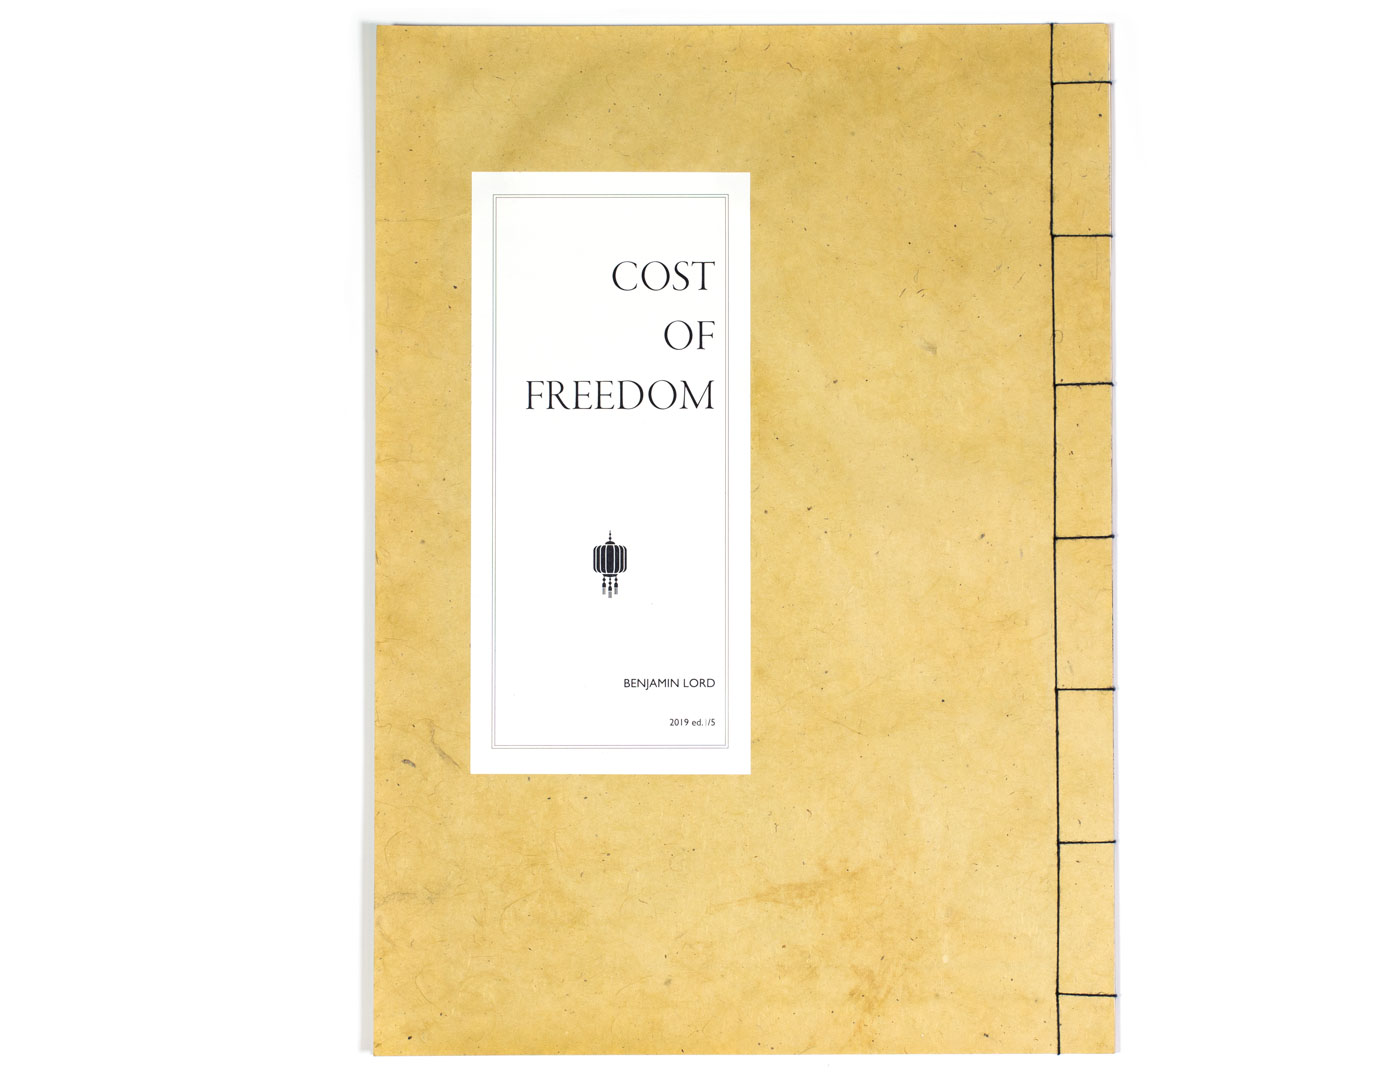 The cover of the book Cost of Freedom